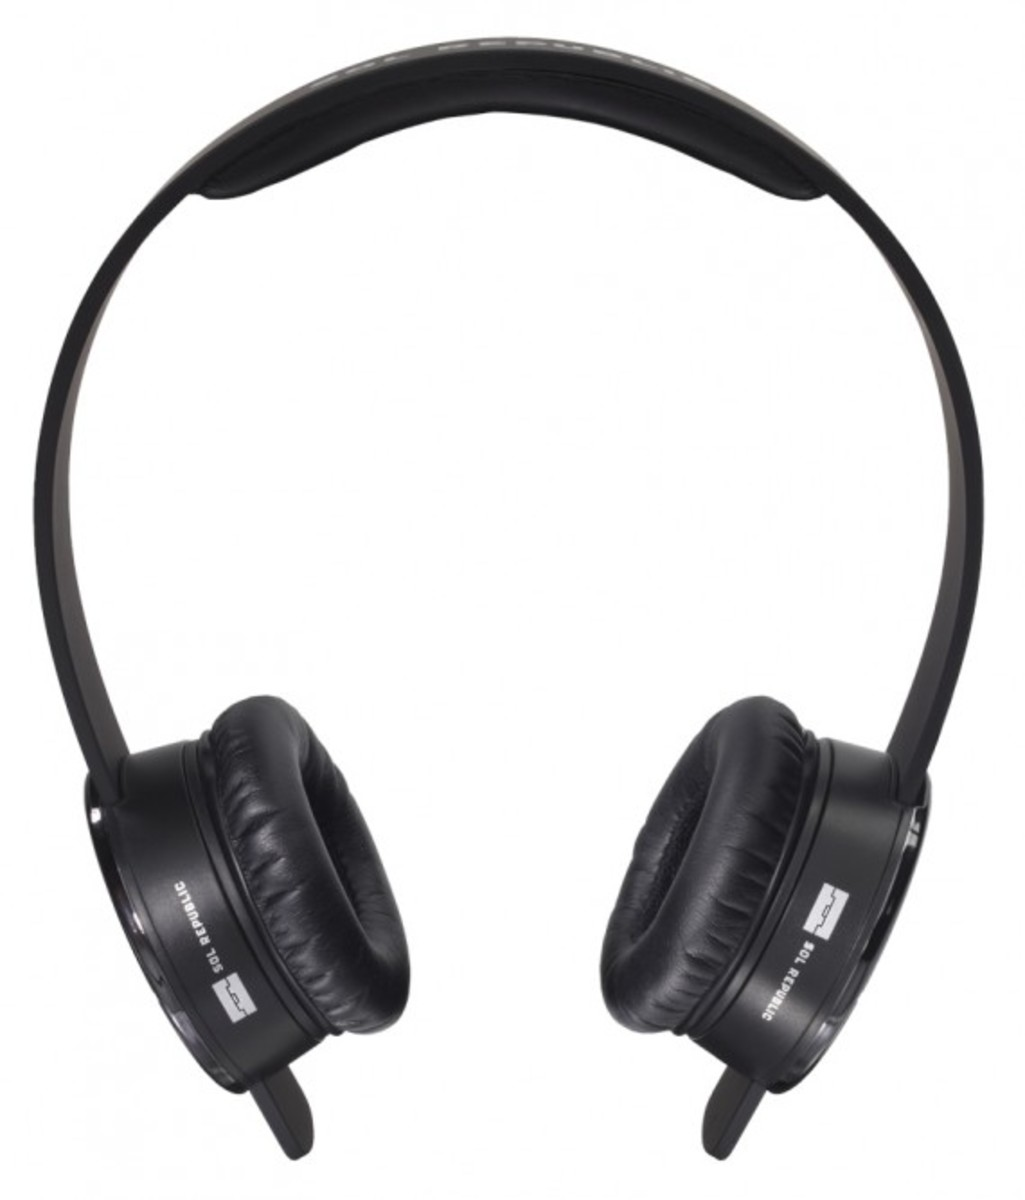 sol-republic-tracks-headphones-black-02